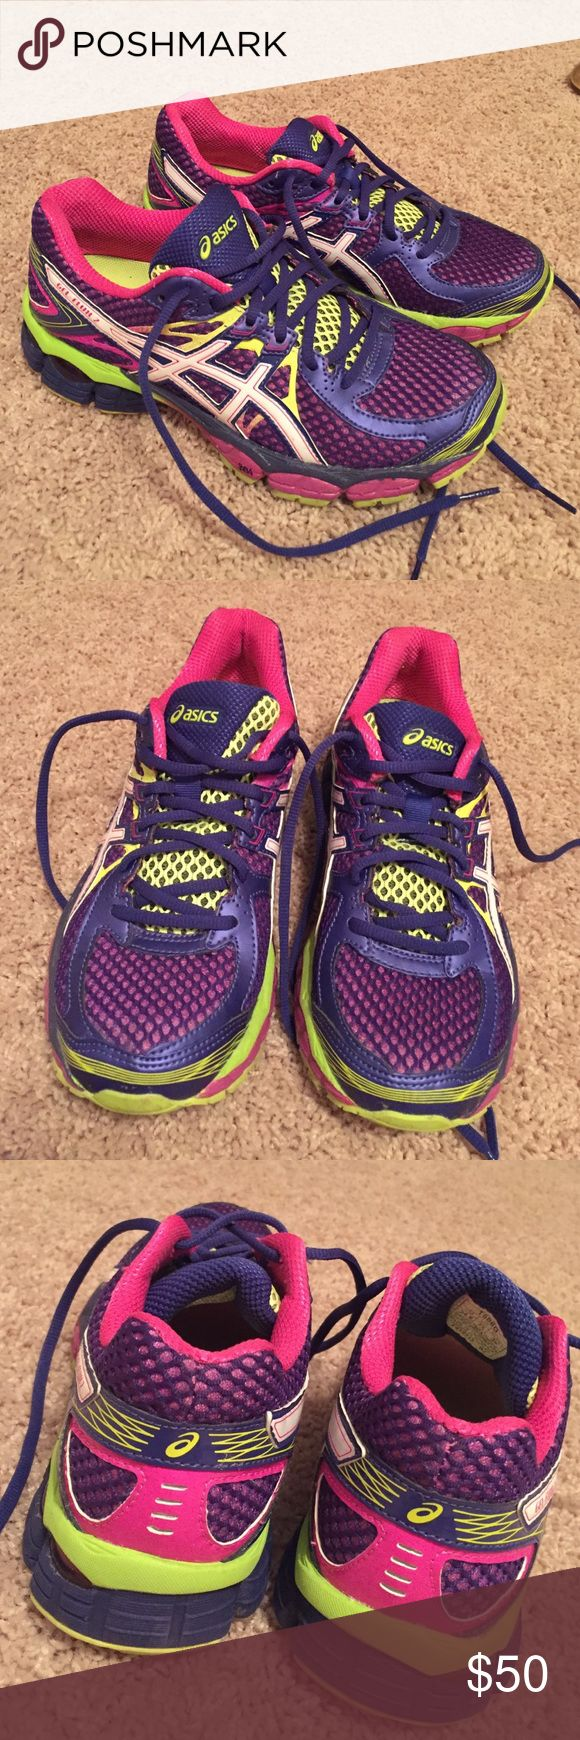 Asics Gel- Flux 2 Neon Sneakers!! Asics Gel- Flux 2 Neon Sneakers!! Size: 7.5 Women's!! Only worn ONCE!!! In perfect condition!!! These shoes are great for running!!! Do not come with original box! Asics Shoes Sneakers